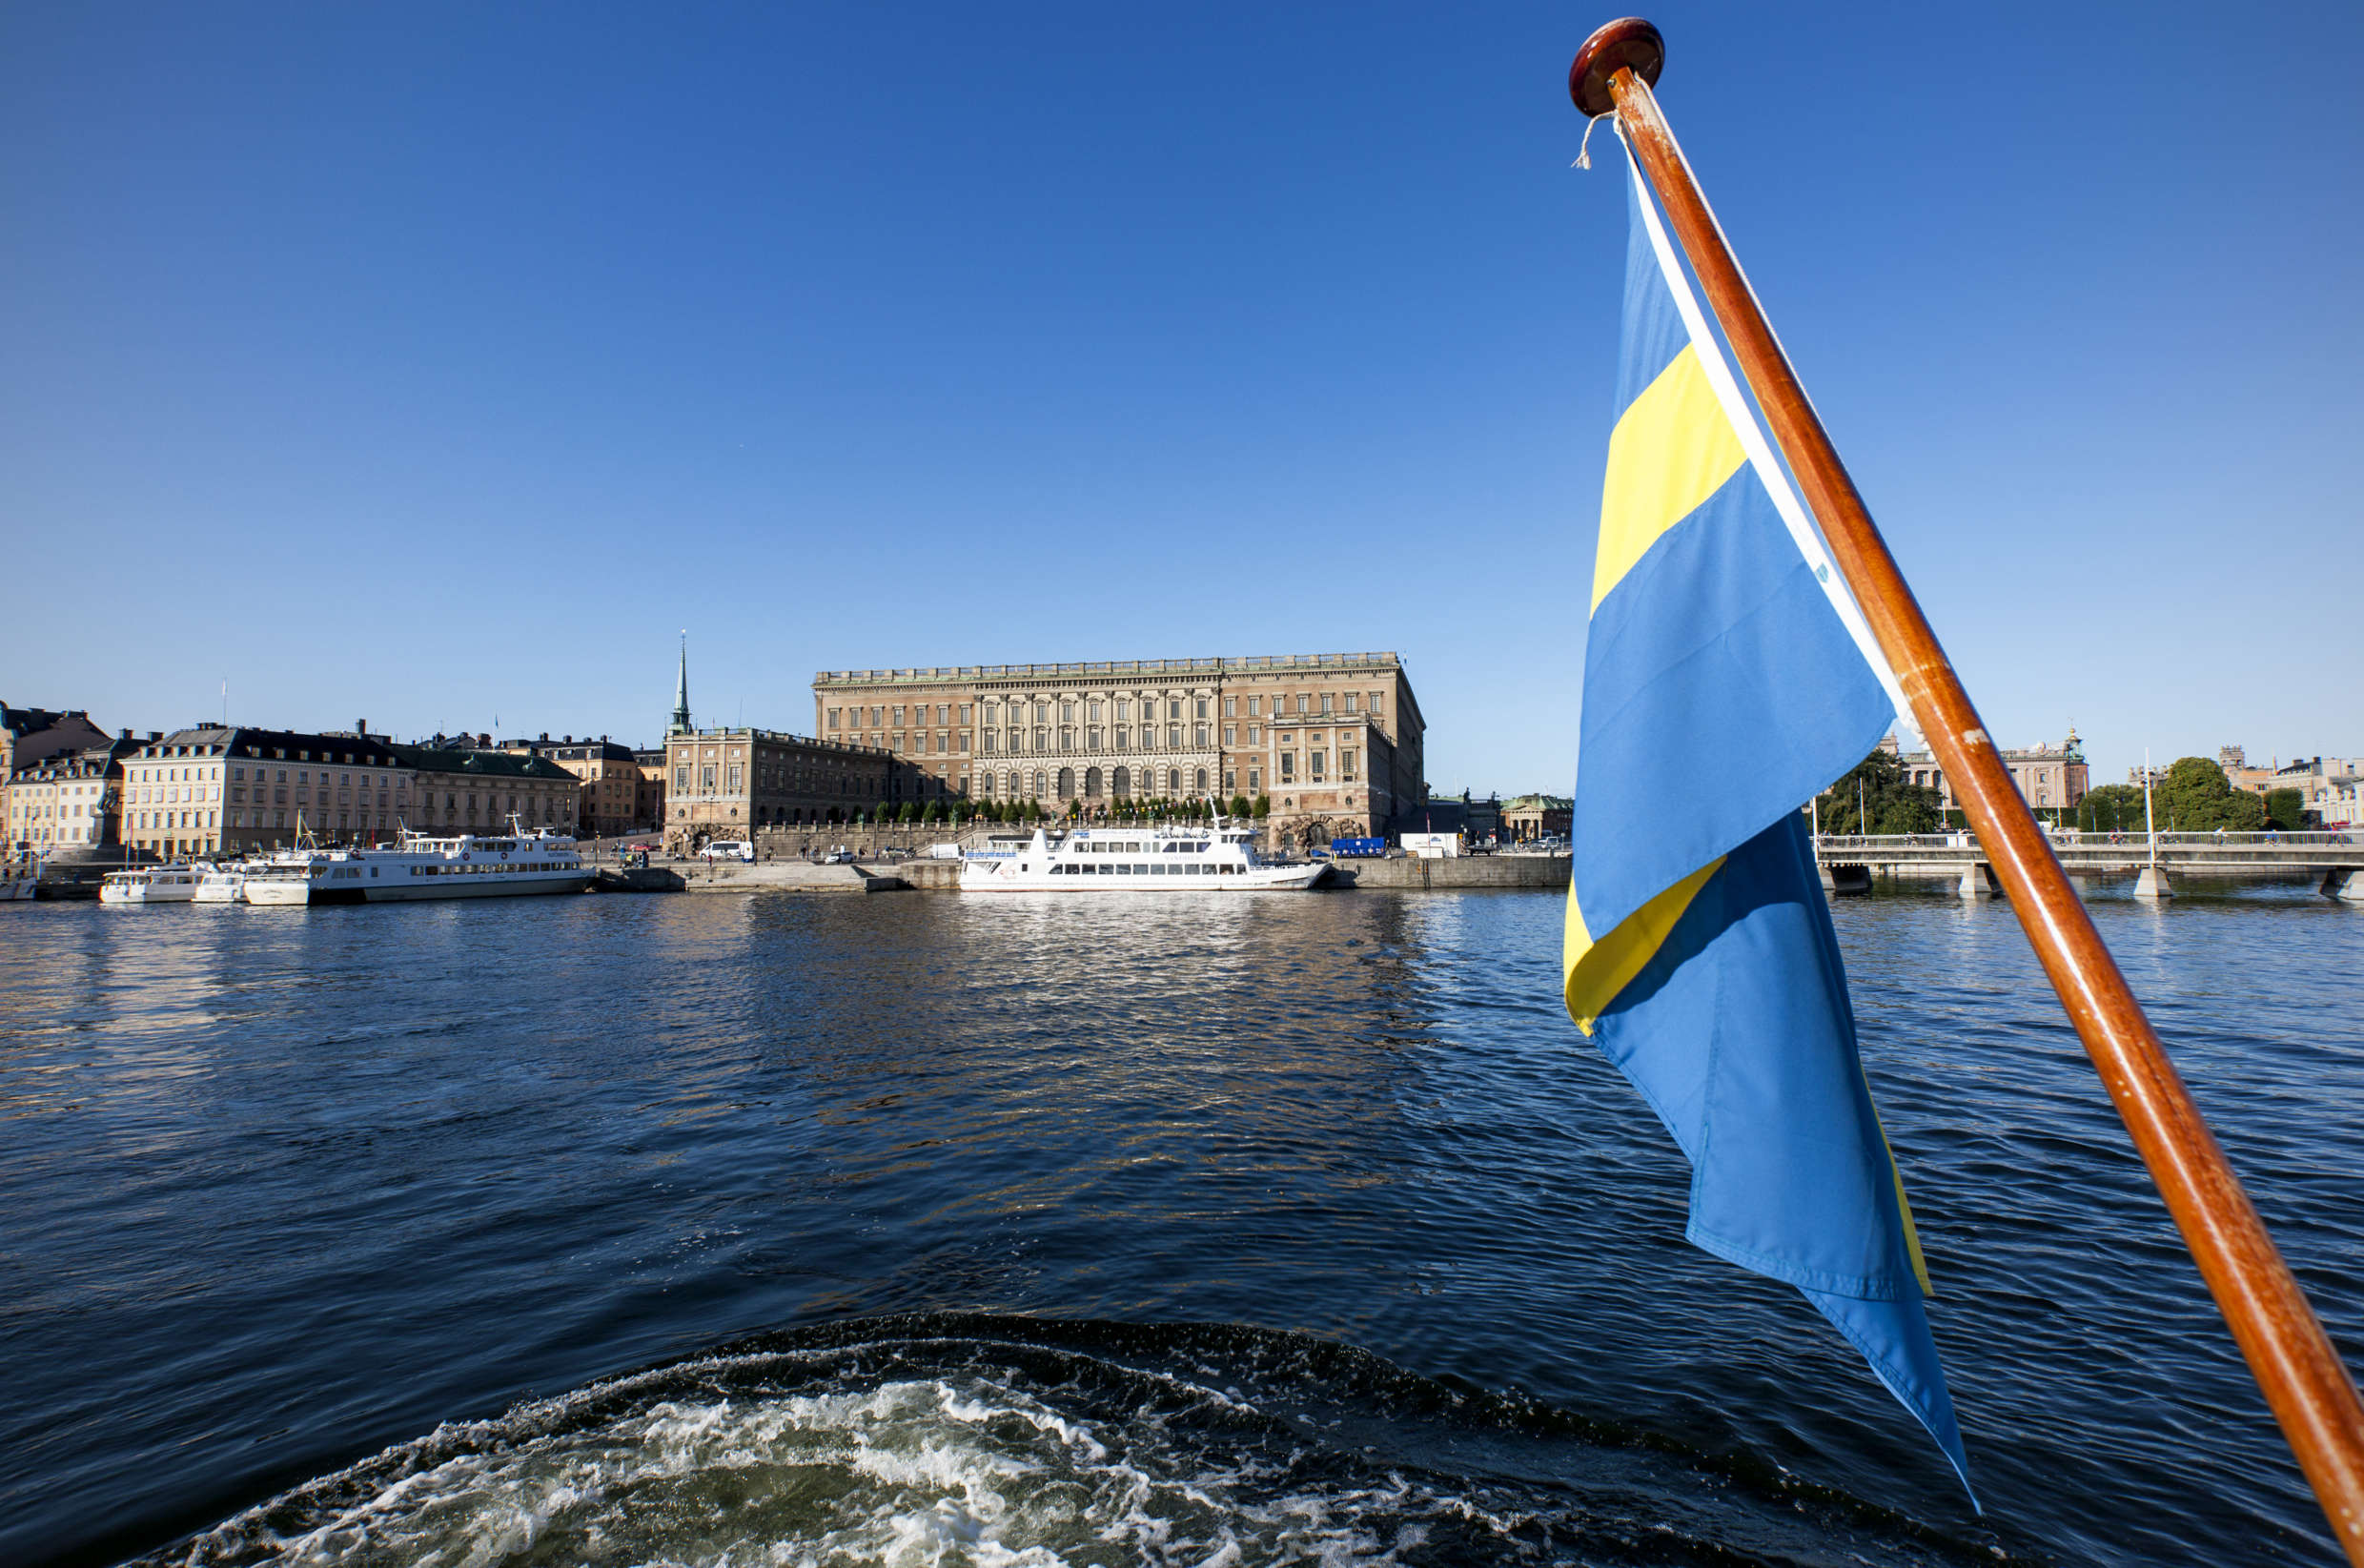 Trygg_Sthlm/ SWEDISH IMMIGRATION: ANSWERS TO HR'S BIGGEST CONCERNS